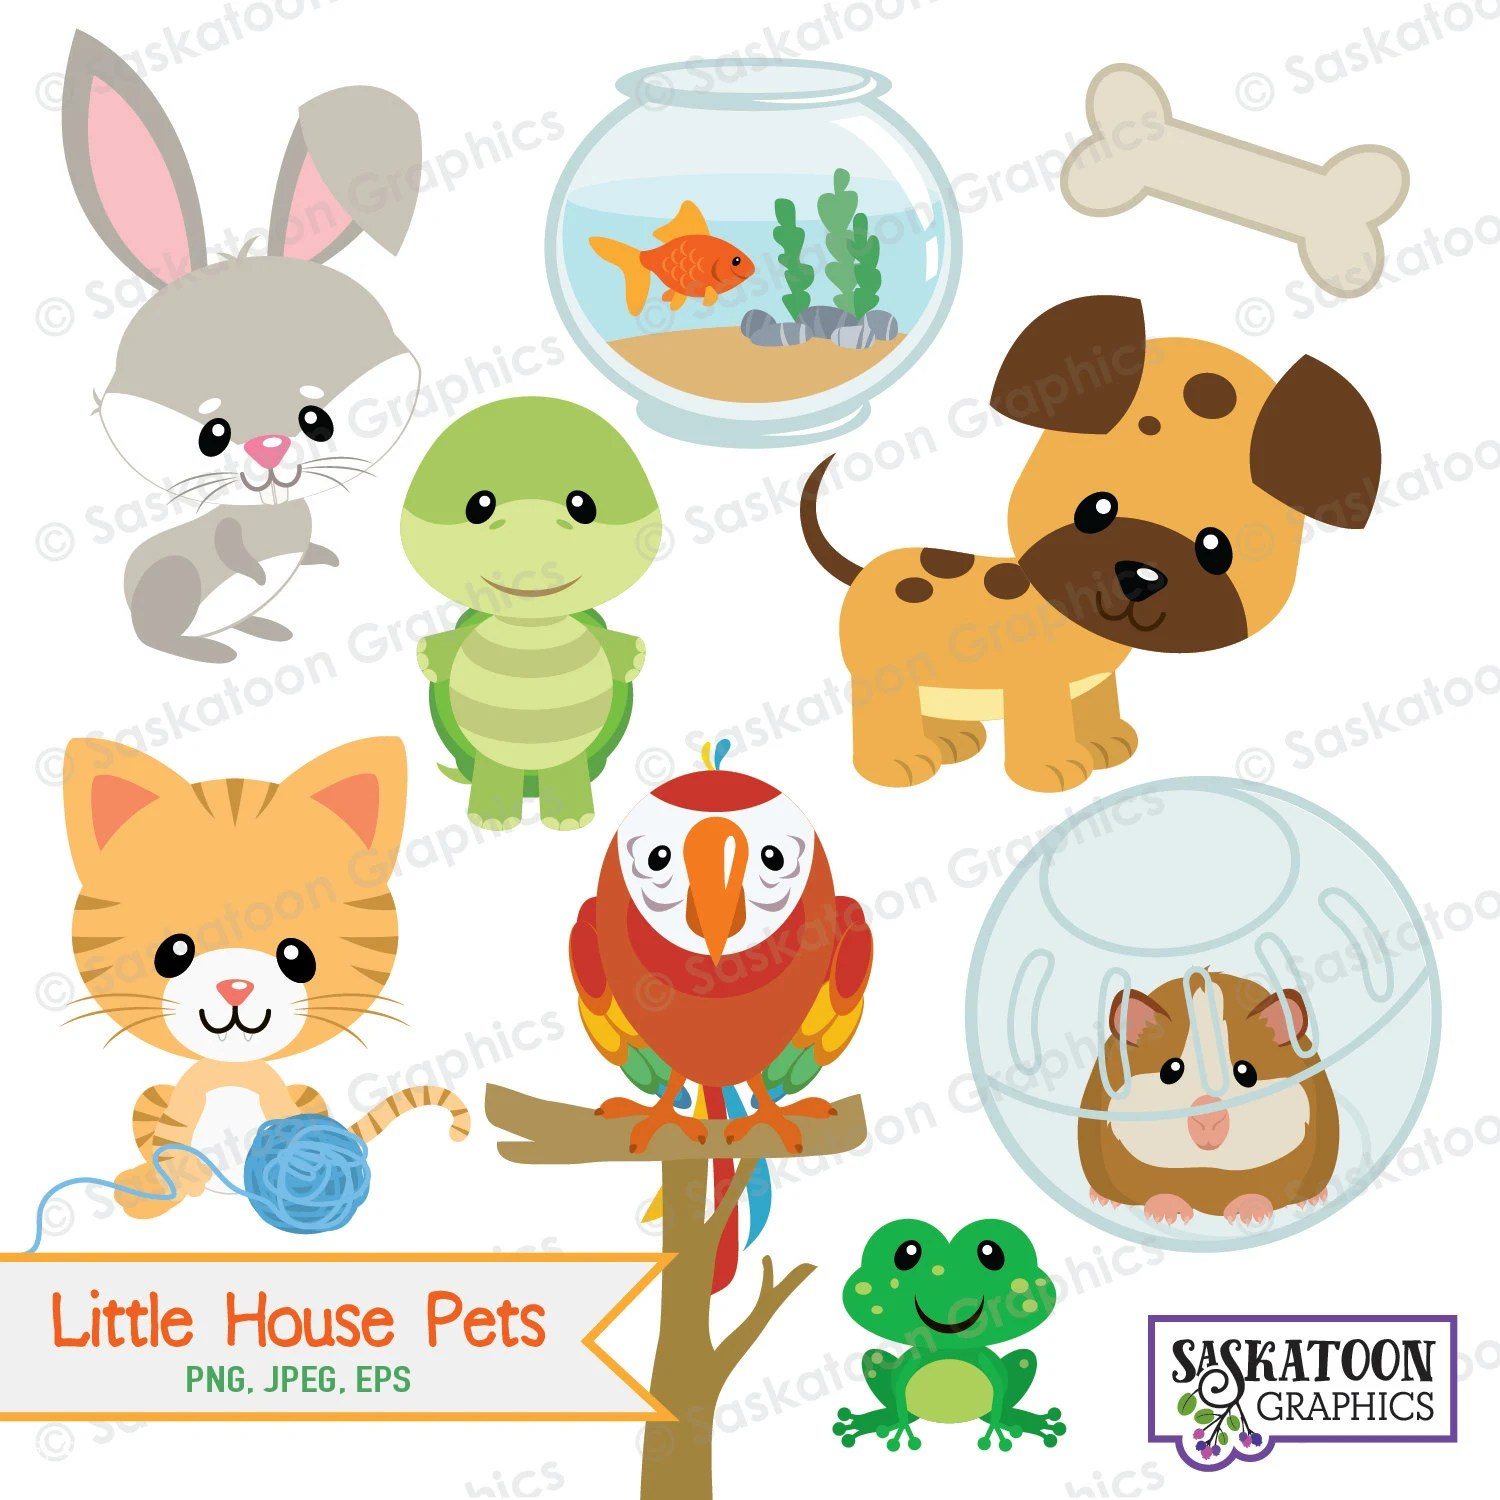 Little House Pets Animal Clipart Instant Download File